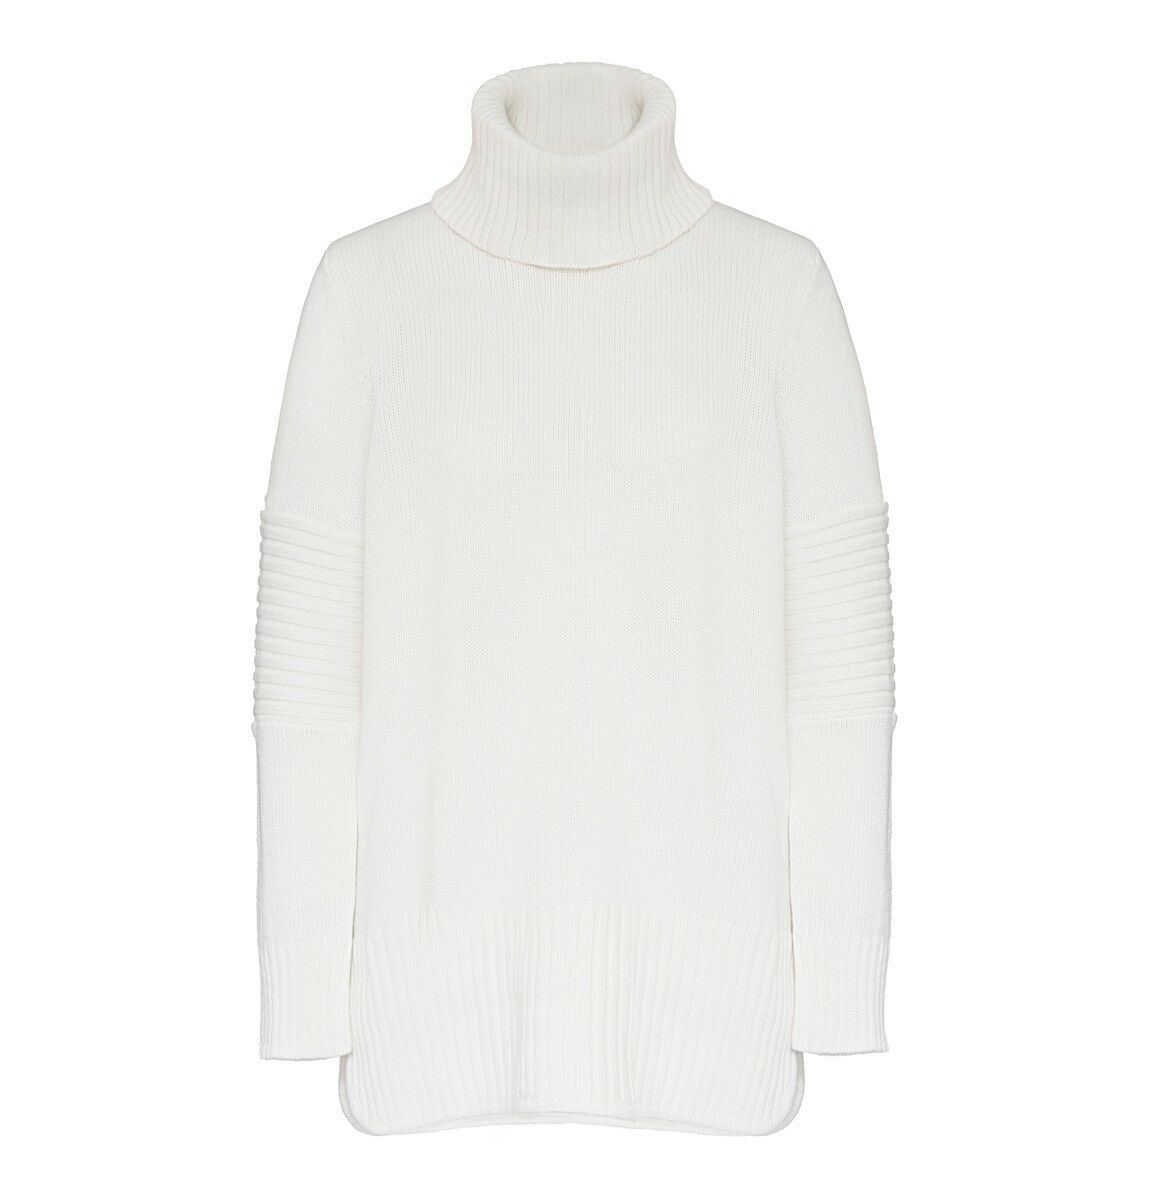 BNWT Elka Collective Katie Knit Jumper White Size XS  AU 6  US 2 RRP  289.00